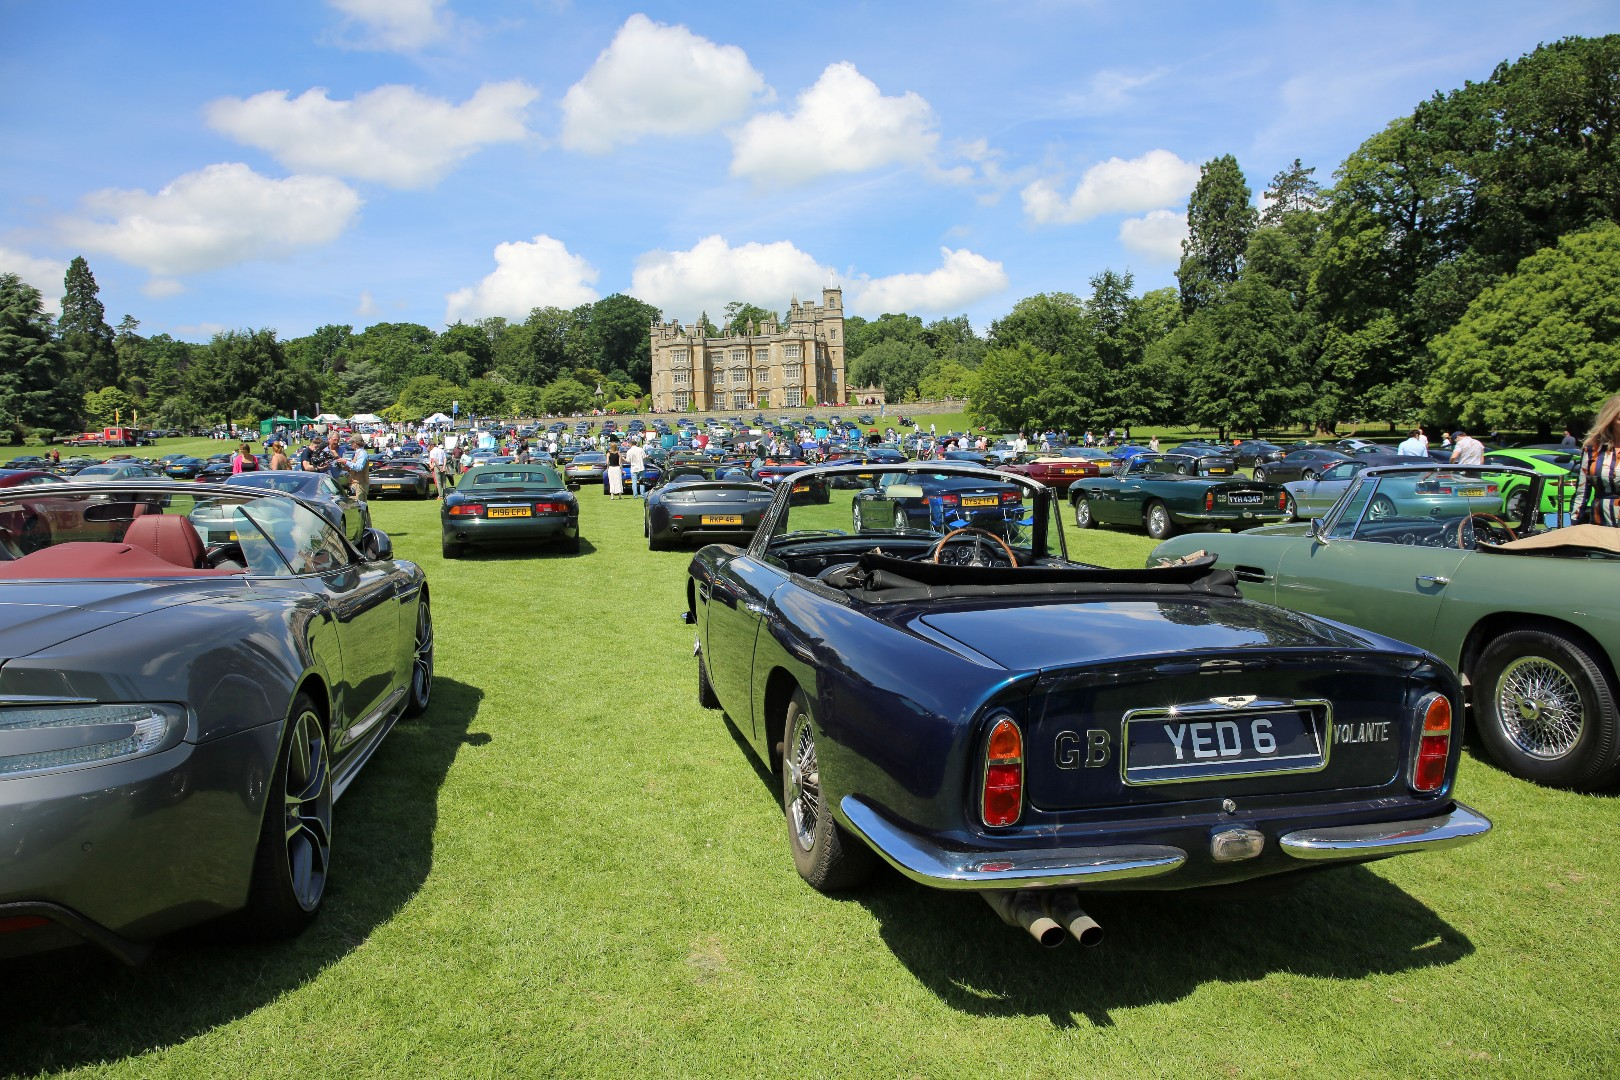 180603_Englefield Concours_Field of Astons_IanKendall.jpg